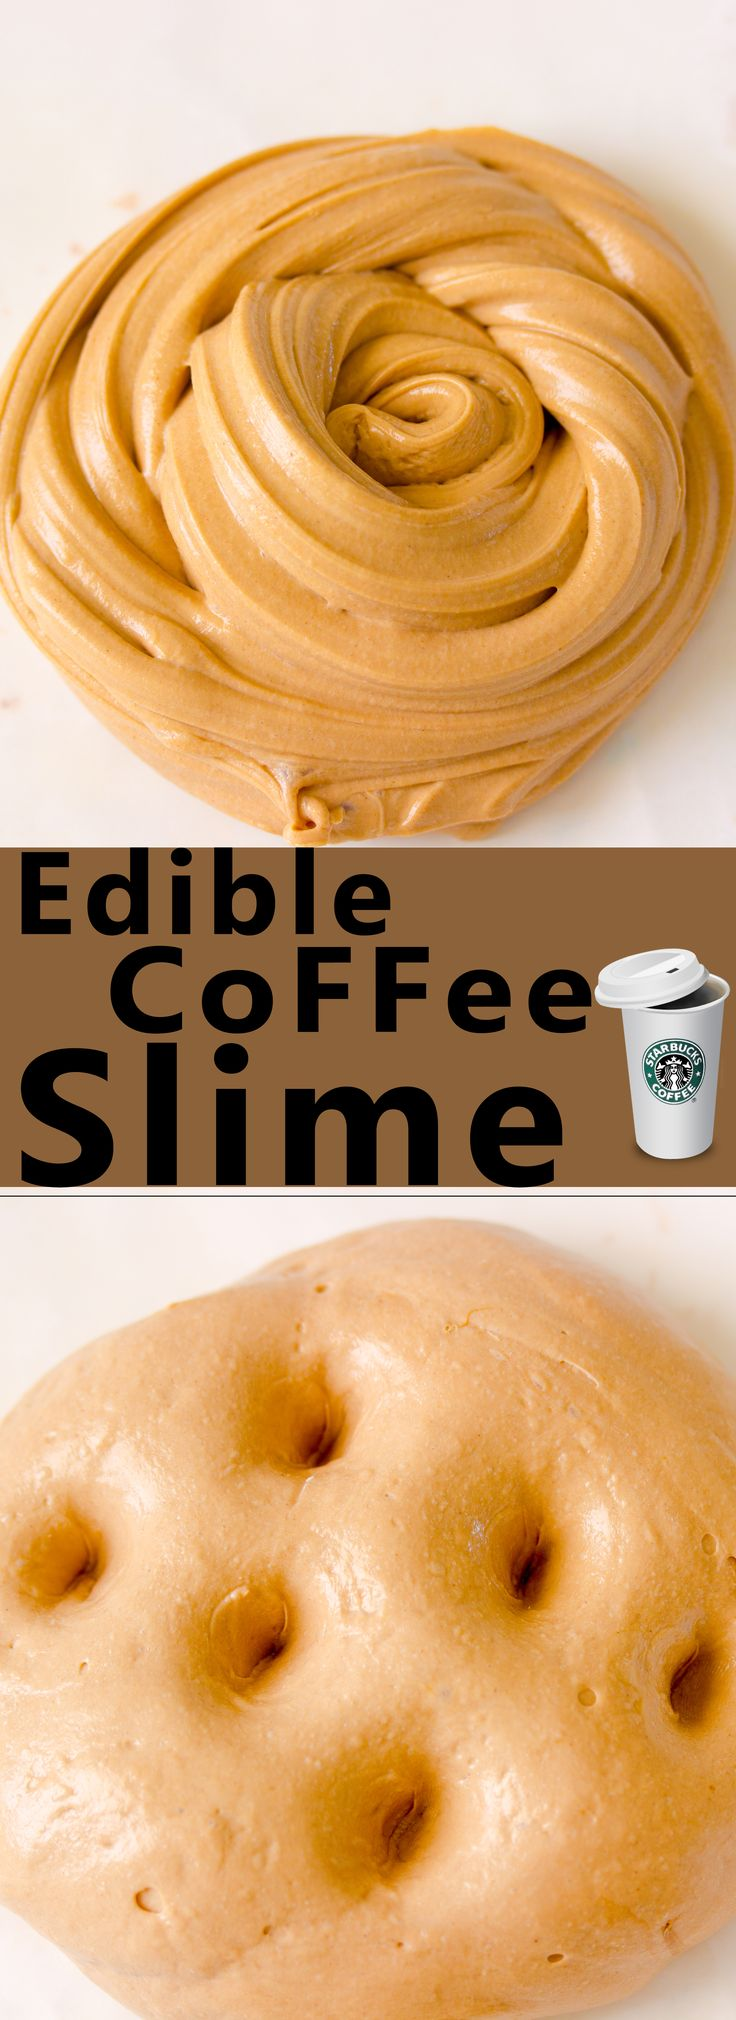 Make This Three Ingredient Coffee Edible Slime That Is So Easy To Make And  Makes The